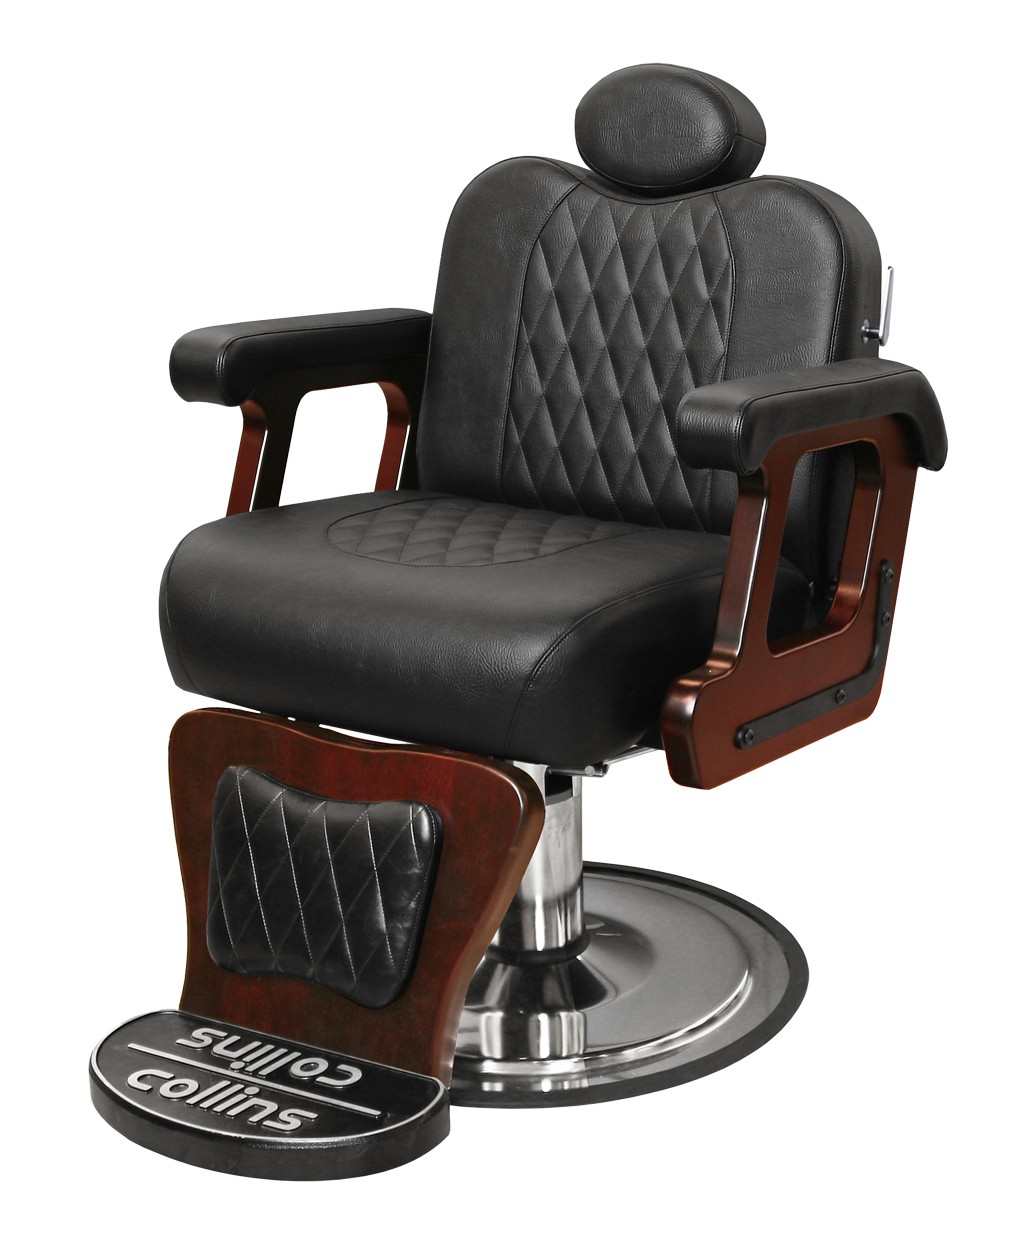 sc 1 st  Buy-Rite Beauty & Collins B10 Commander Premium Barber Chair